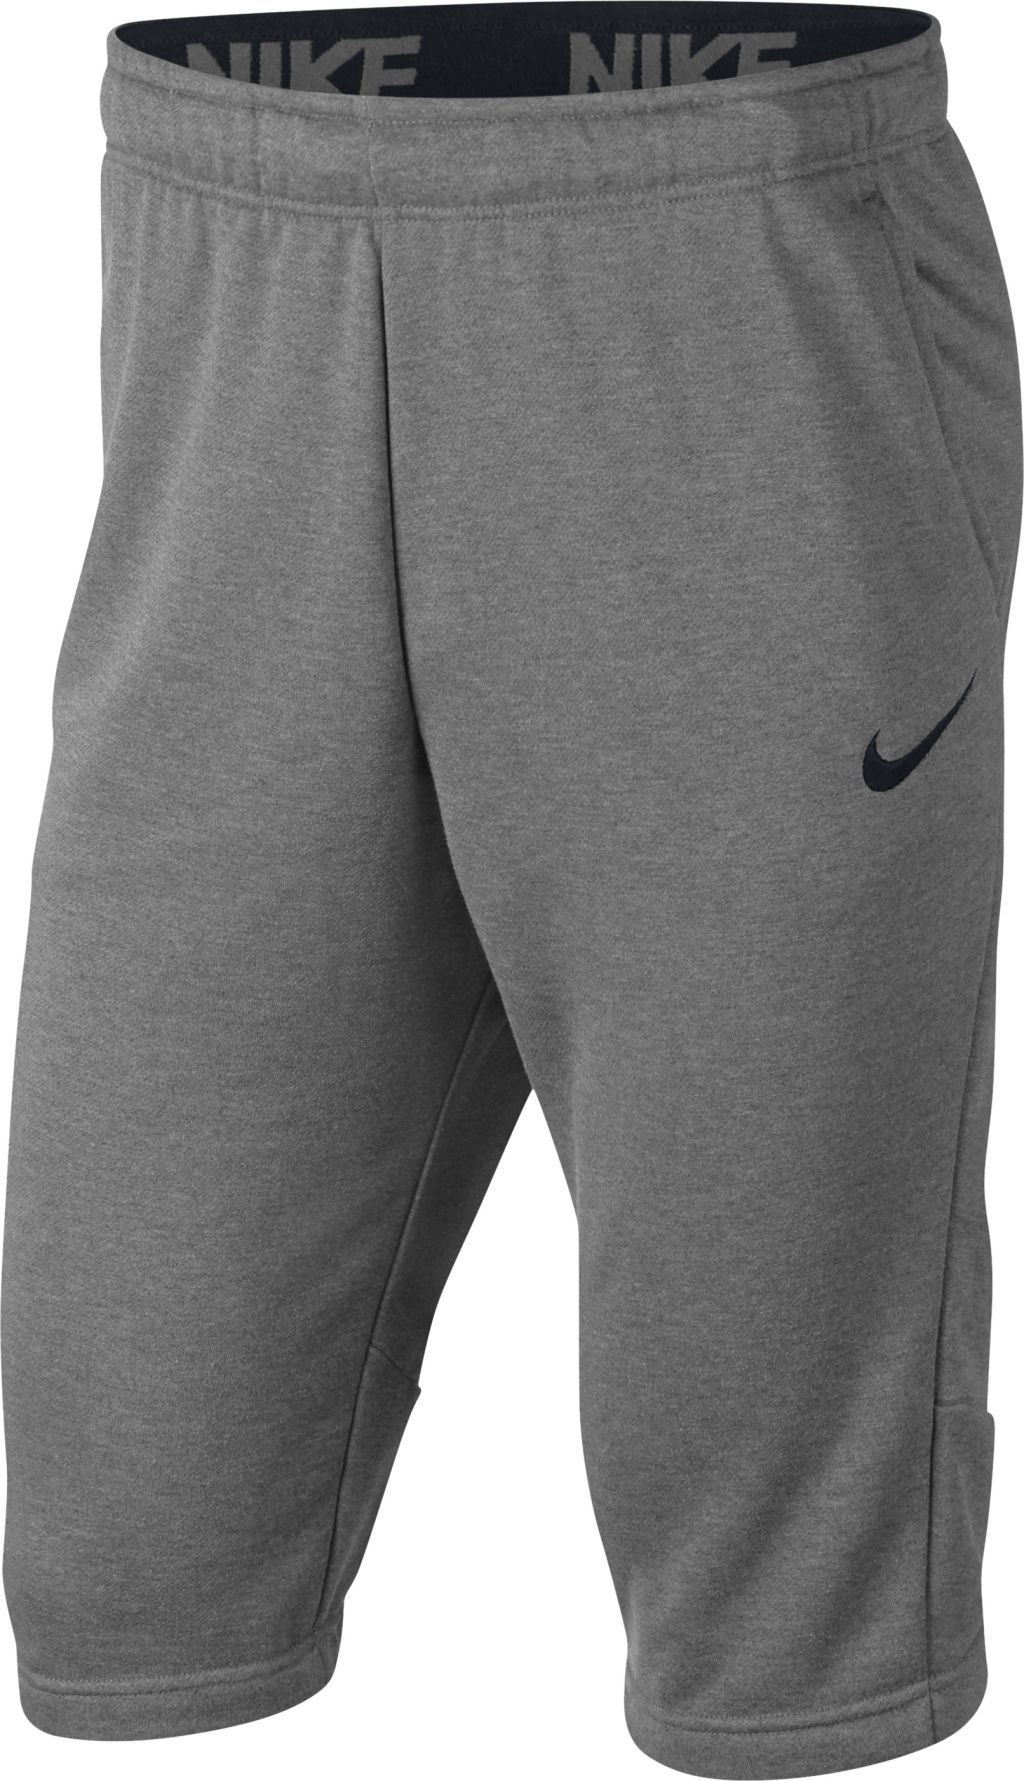 Nike Dry Training Short M